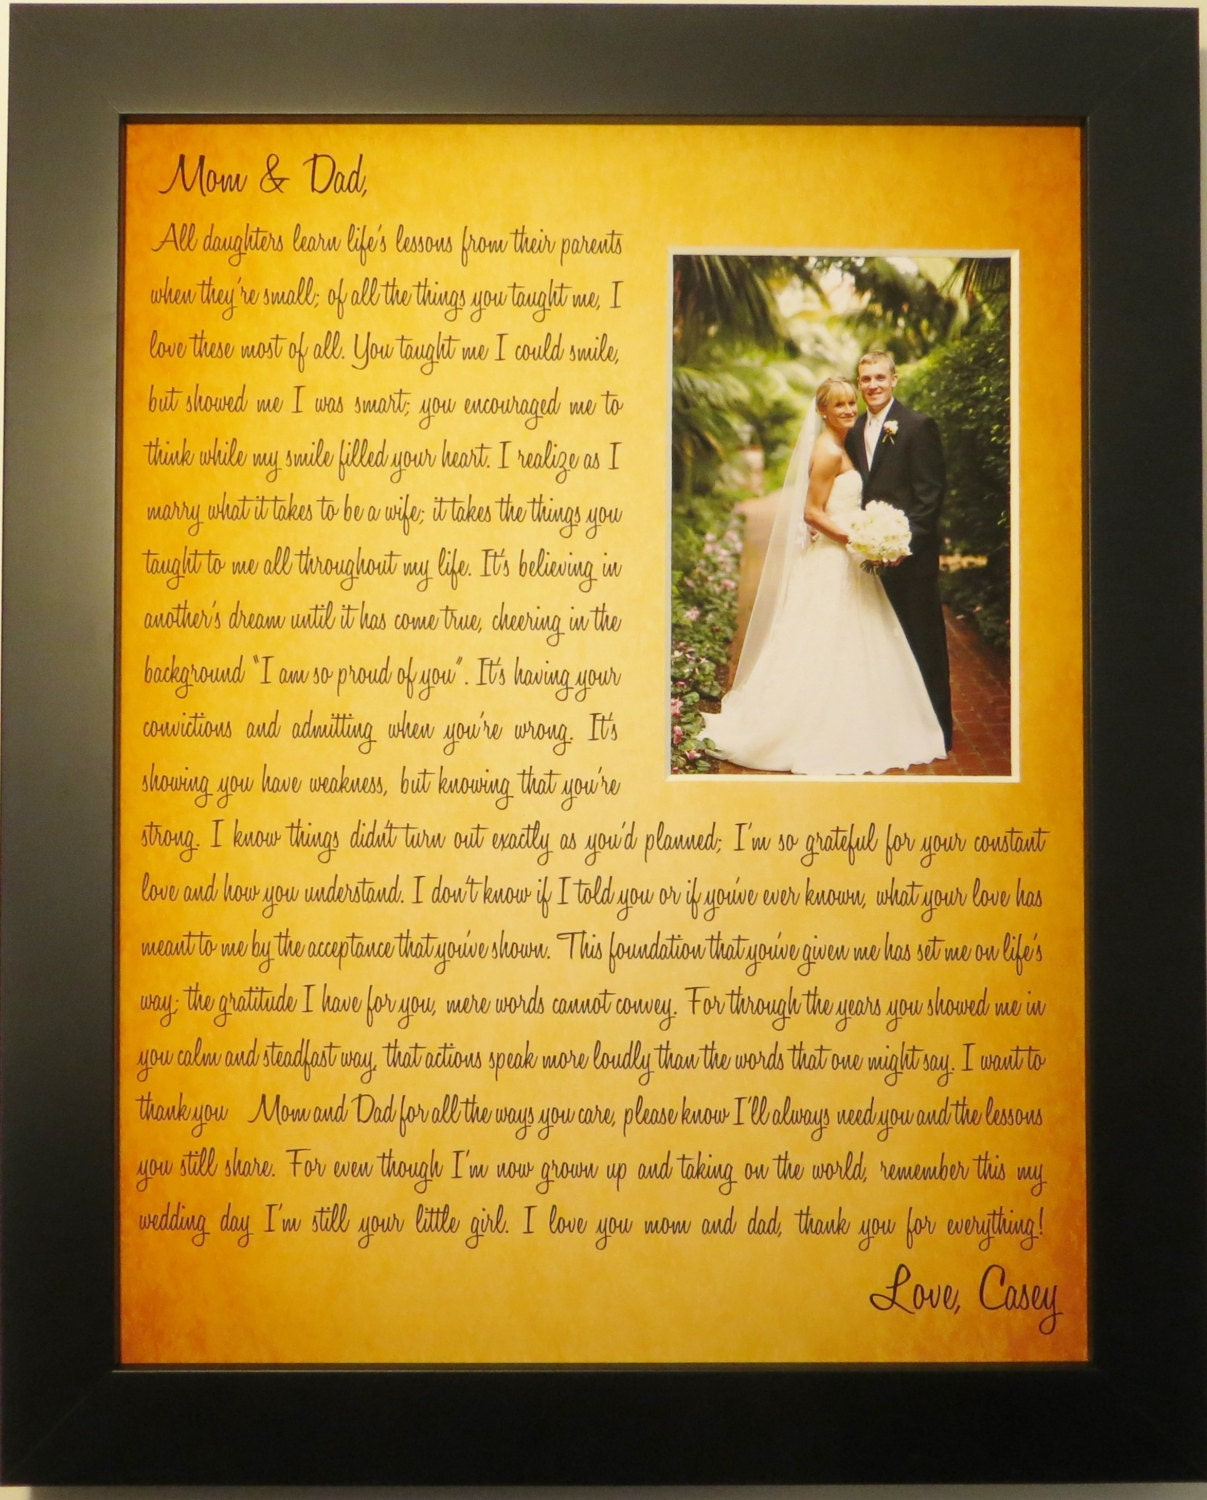 Wedding Card Messages To Bride And Groom Wedding gift parents